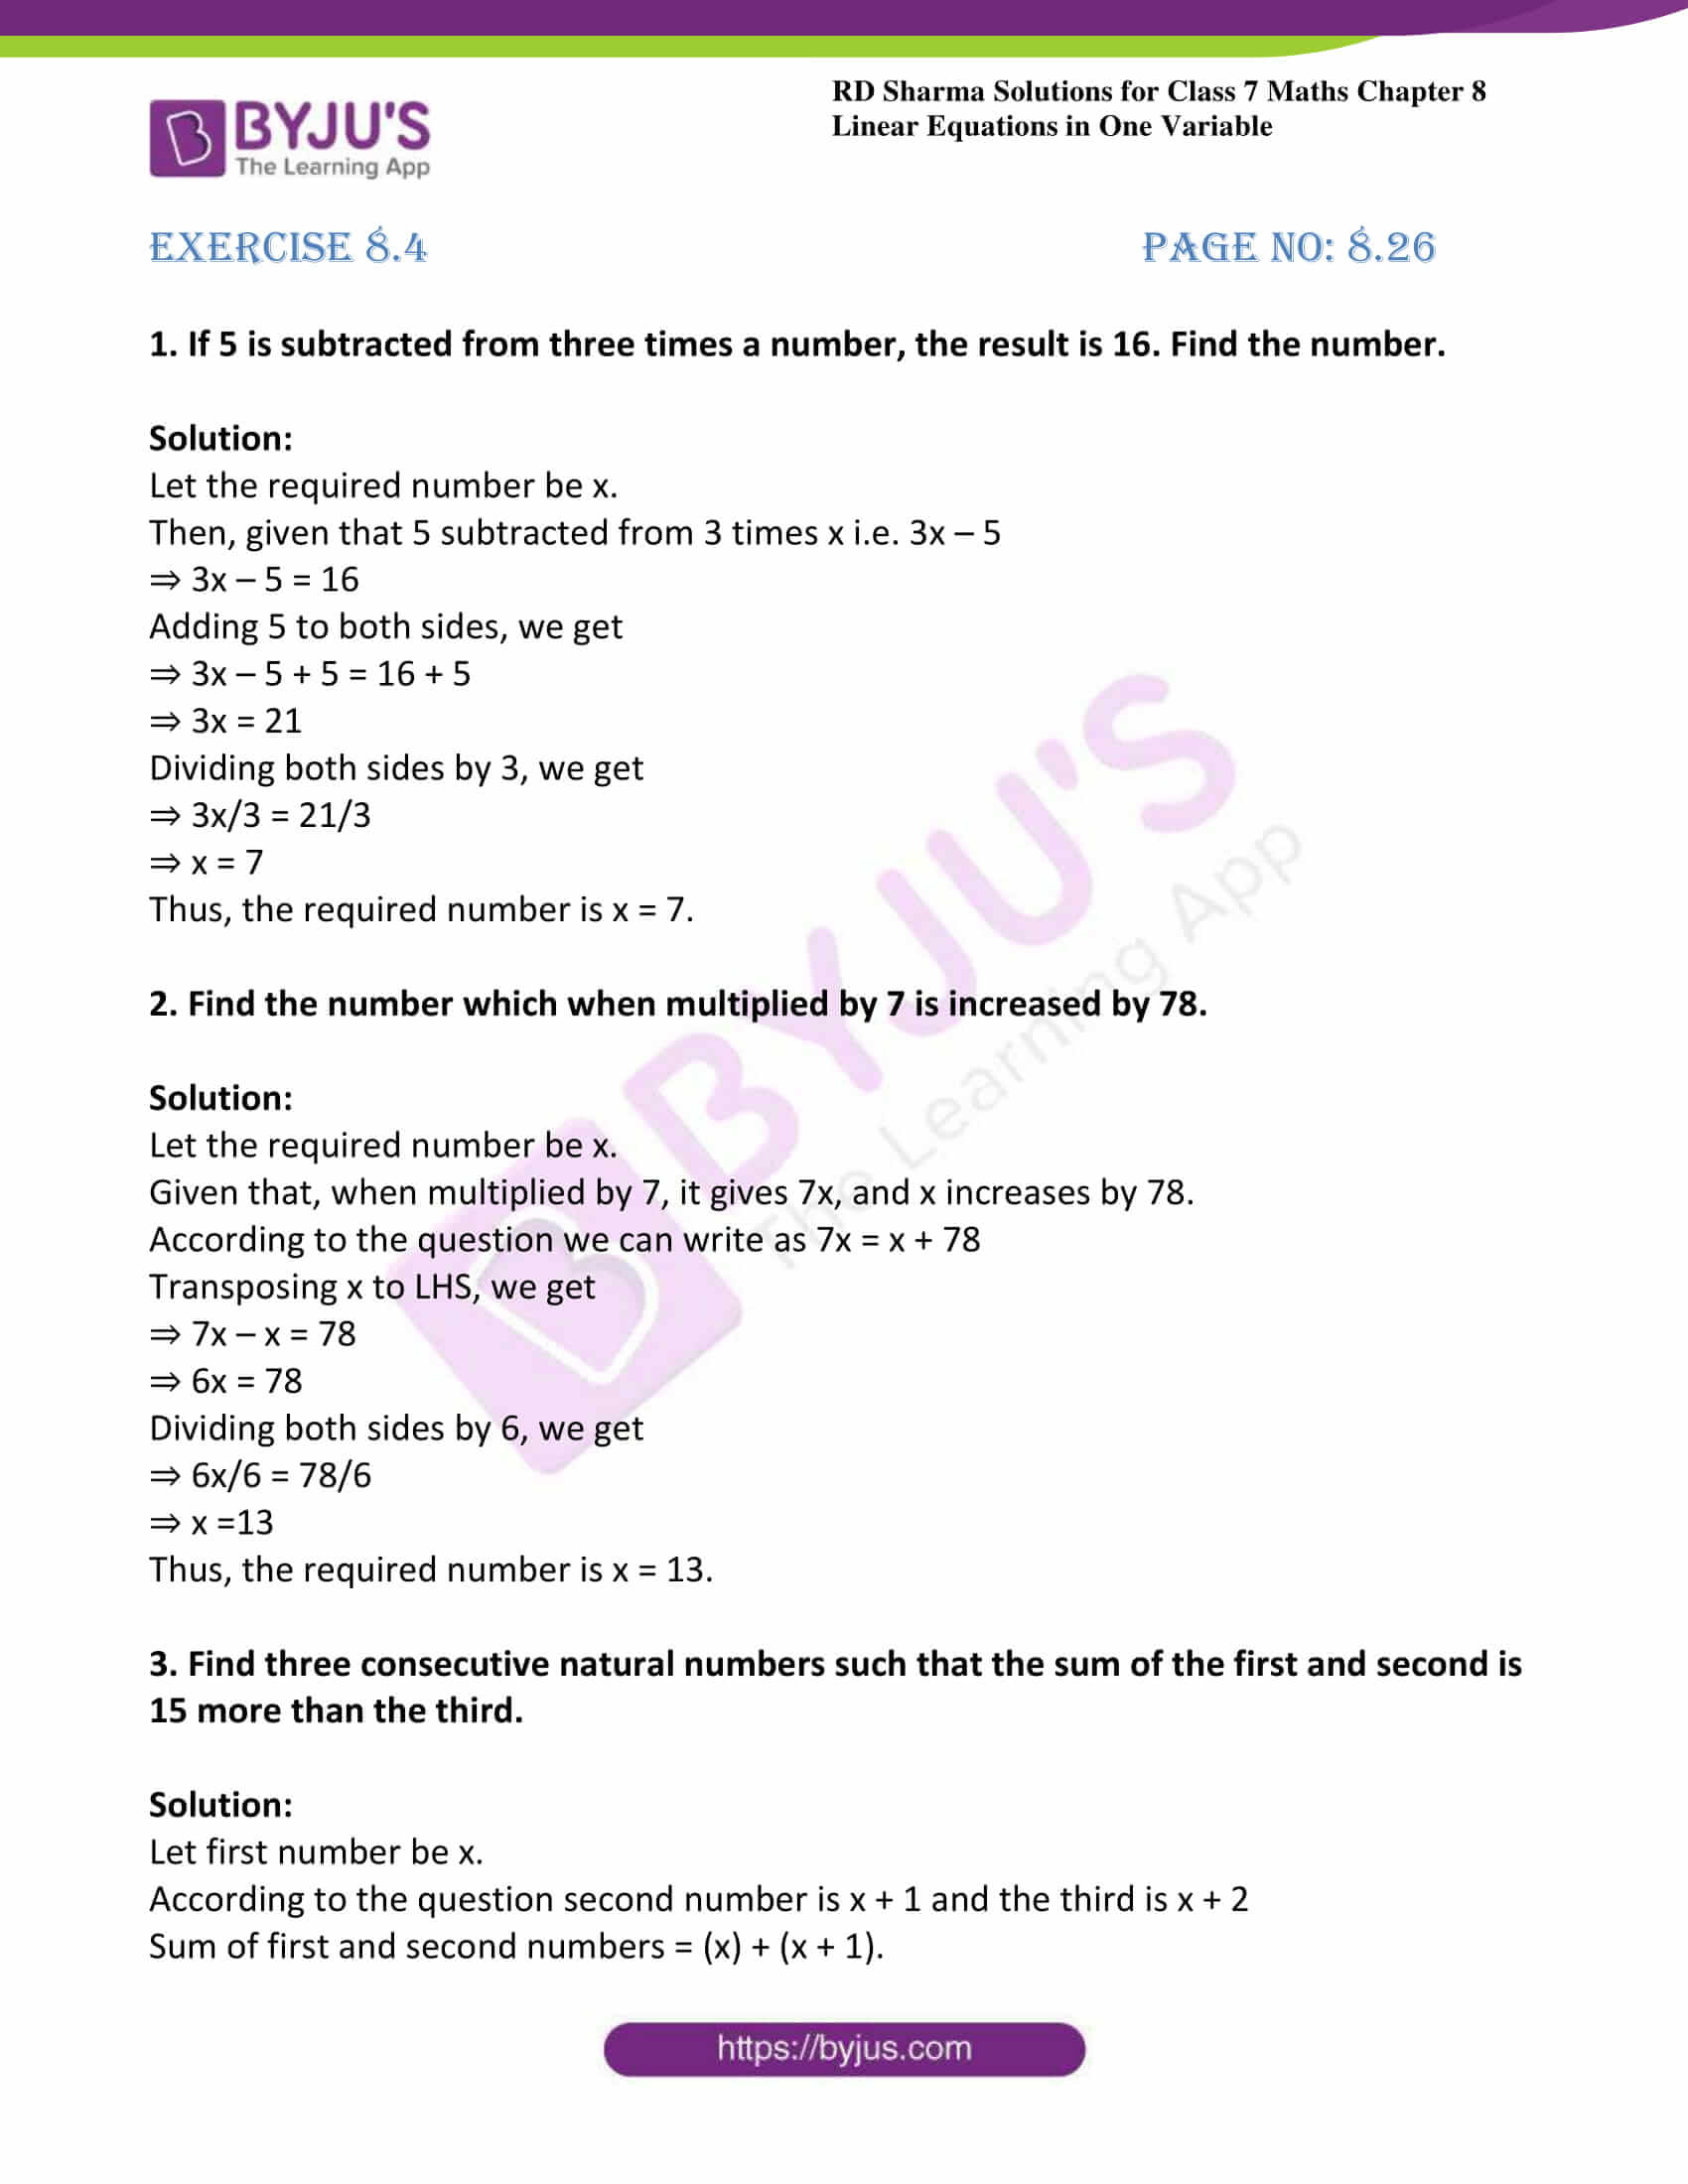 Worksheet On Linear Equations In One Variable For Class 8